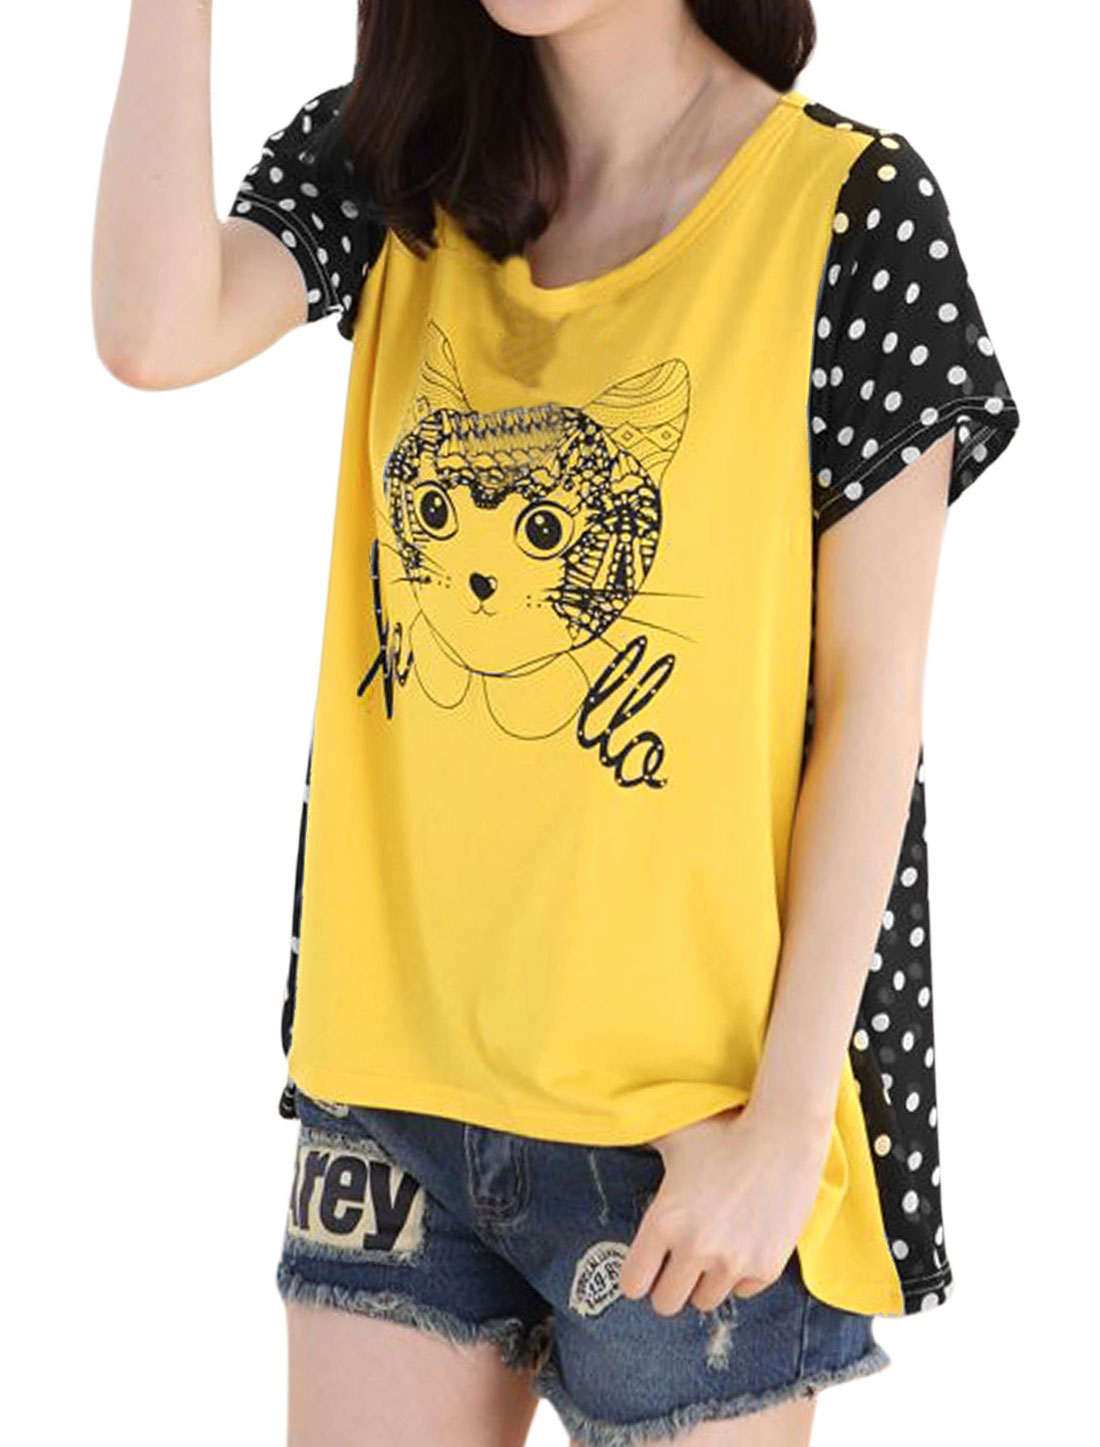 Lady Cat Dots Pattern Chiffon Panel Curve Hem Casual T-shirt Bright Yellow S